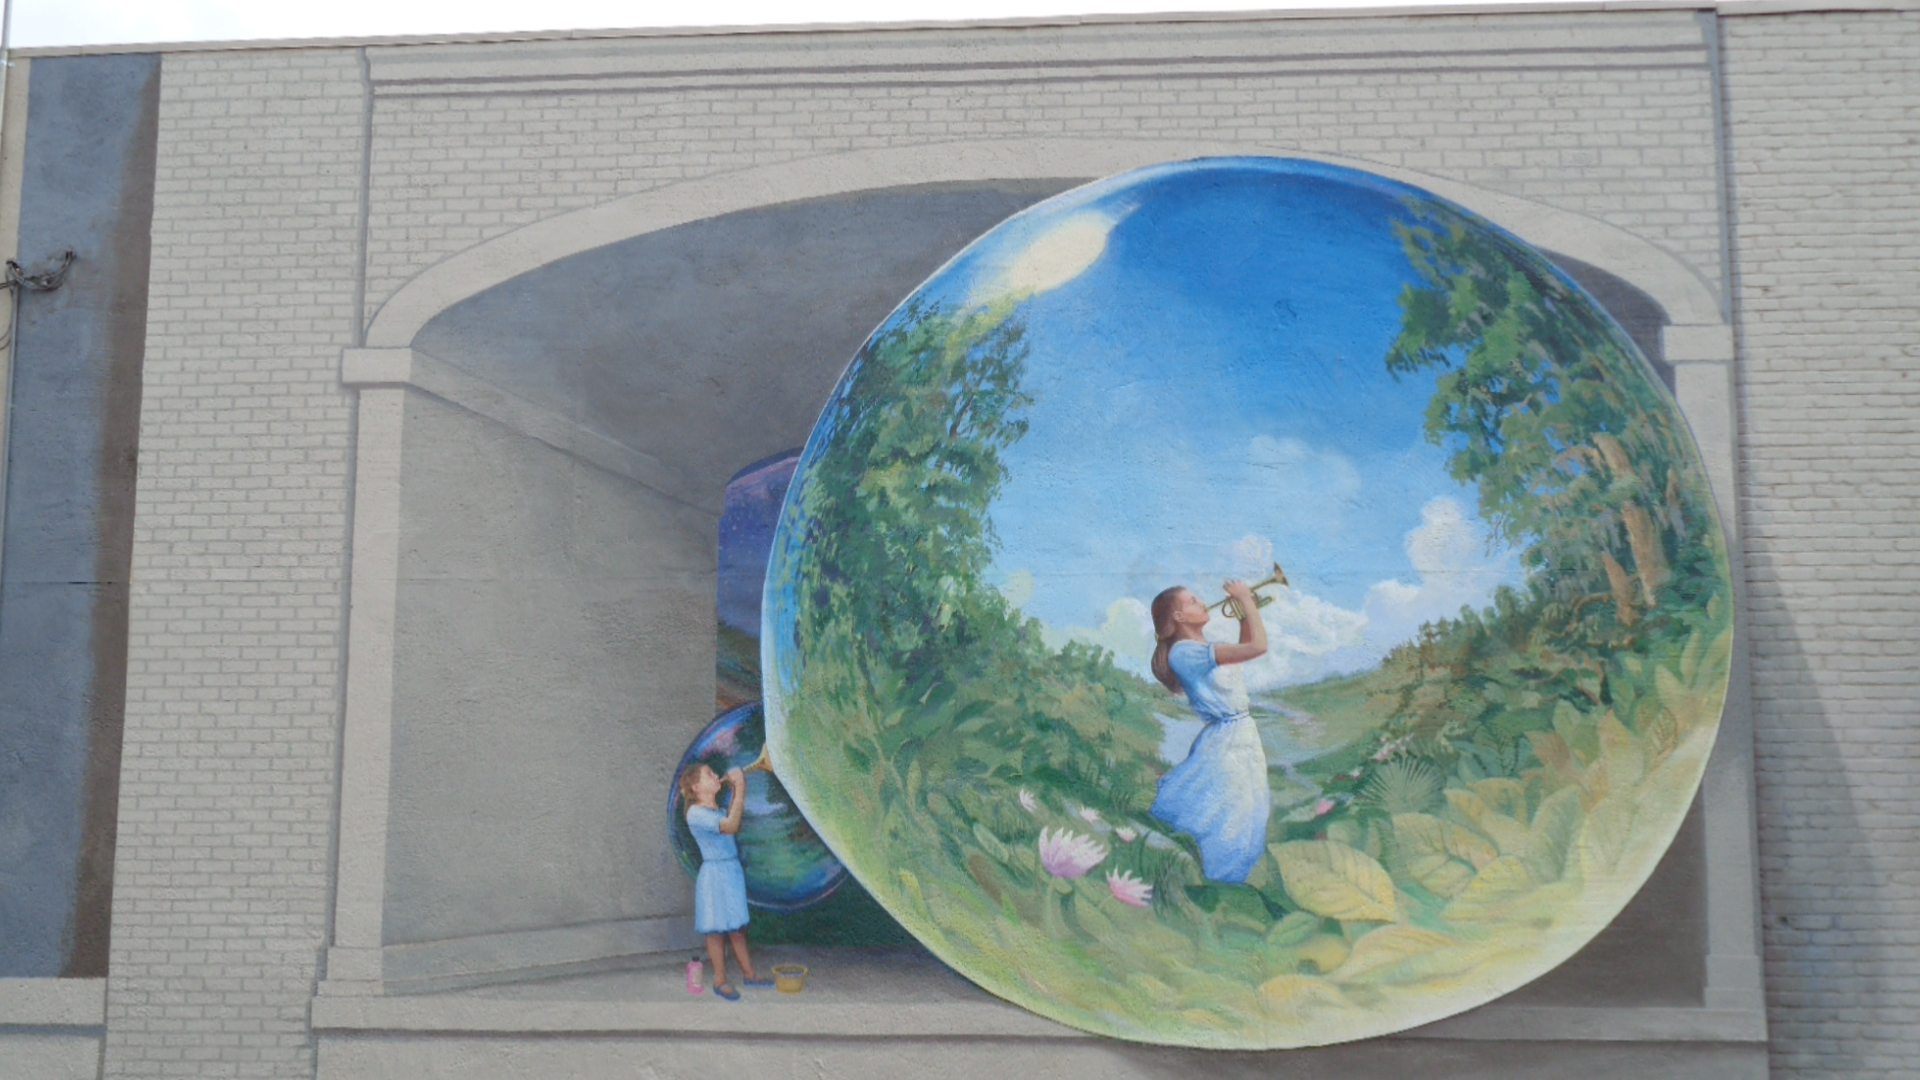 Making JEFFERSON BEAUTIFUL - Worked for beautifying our public rights of way with murals, decorative lighting, fountains and landscaping